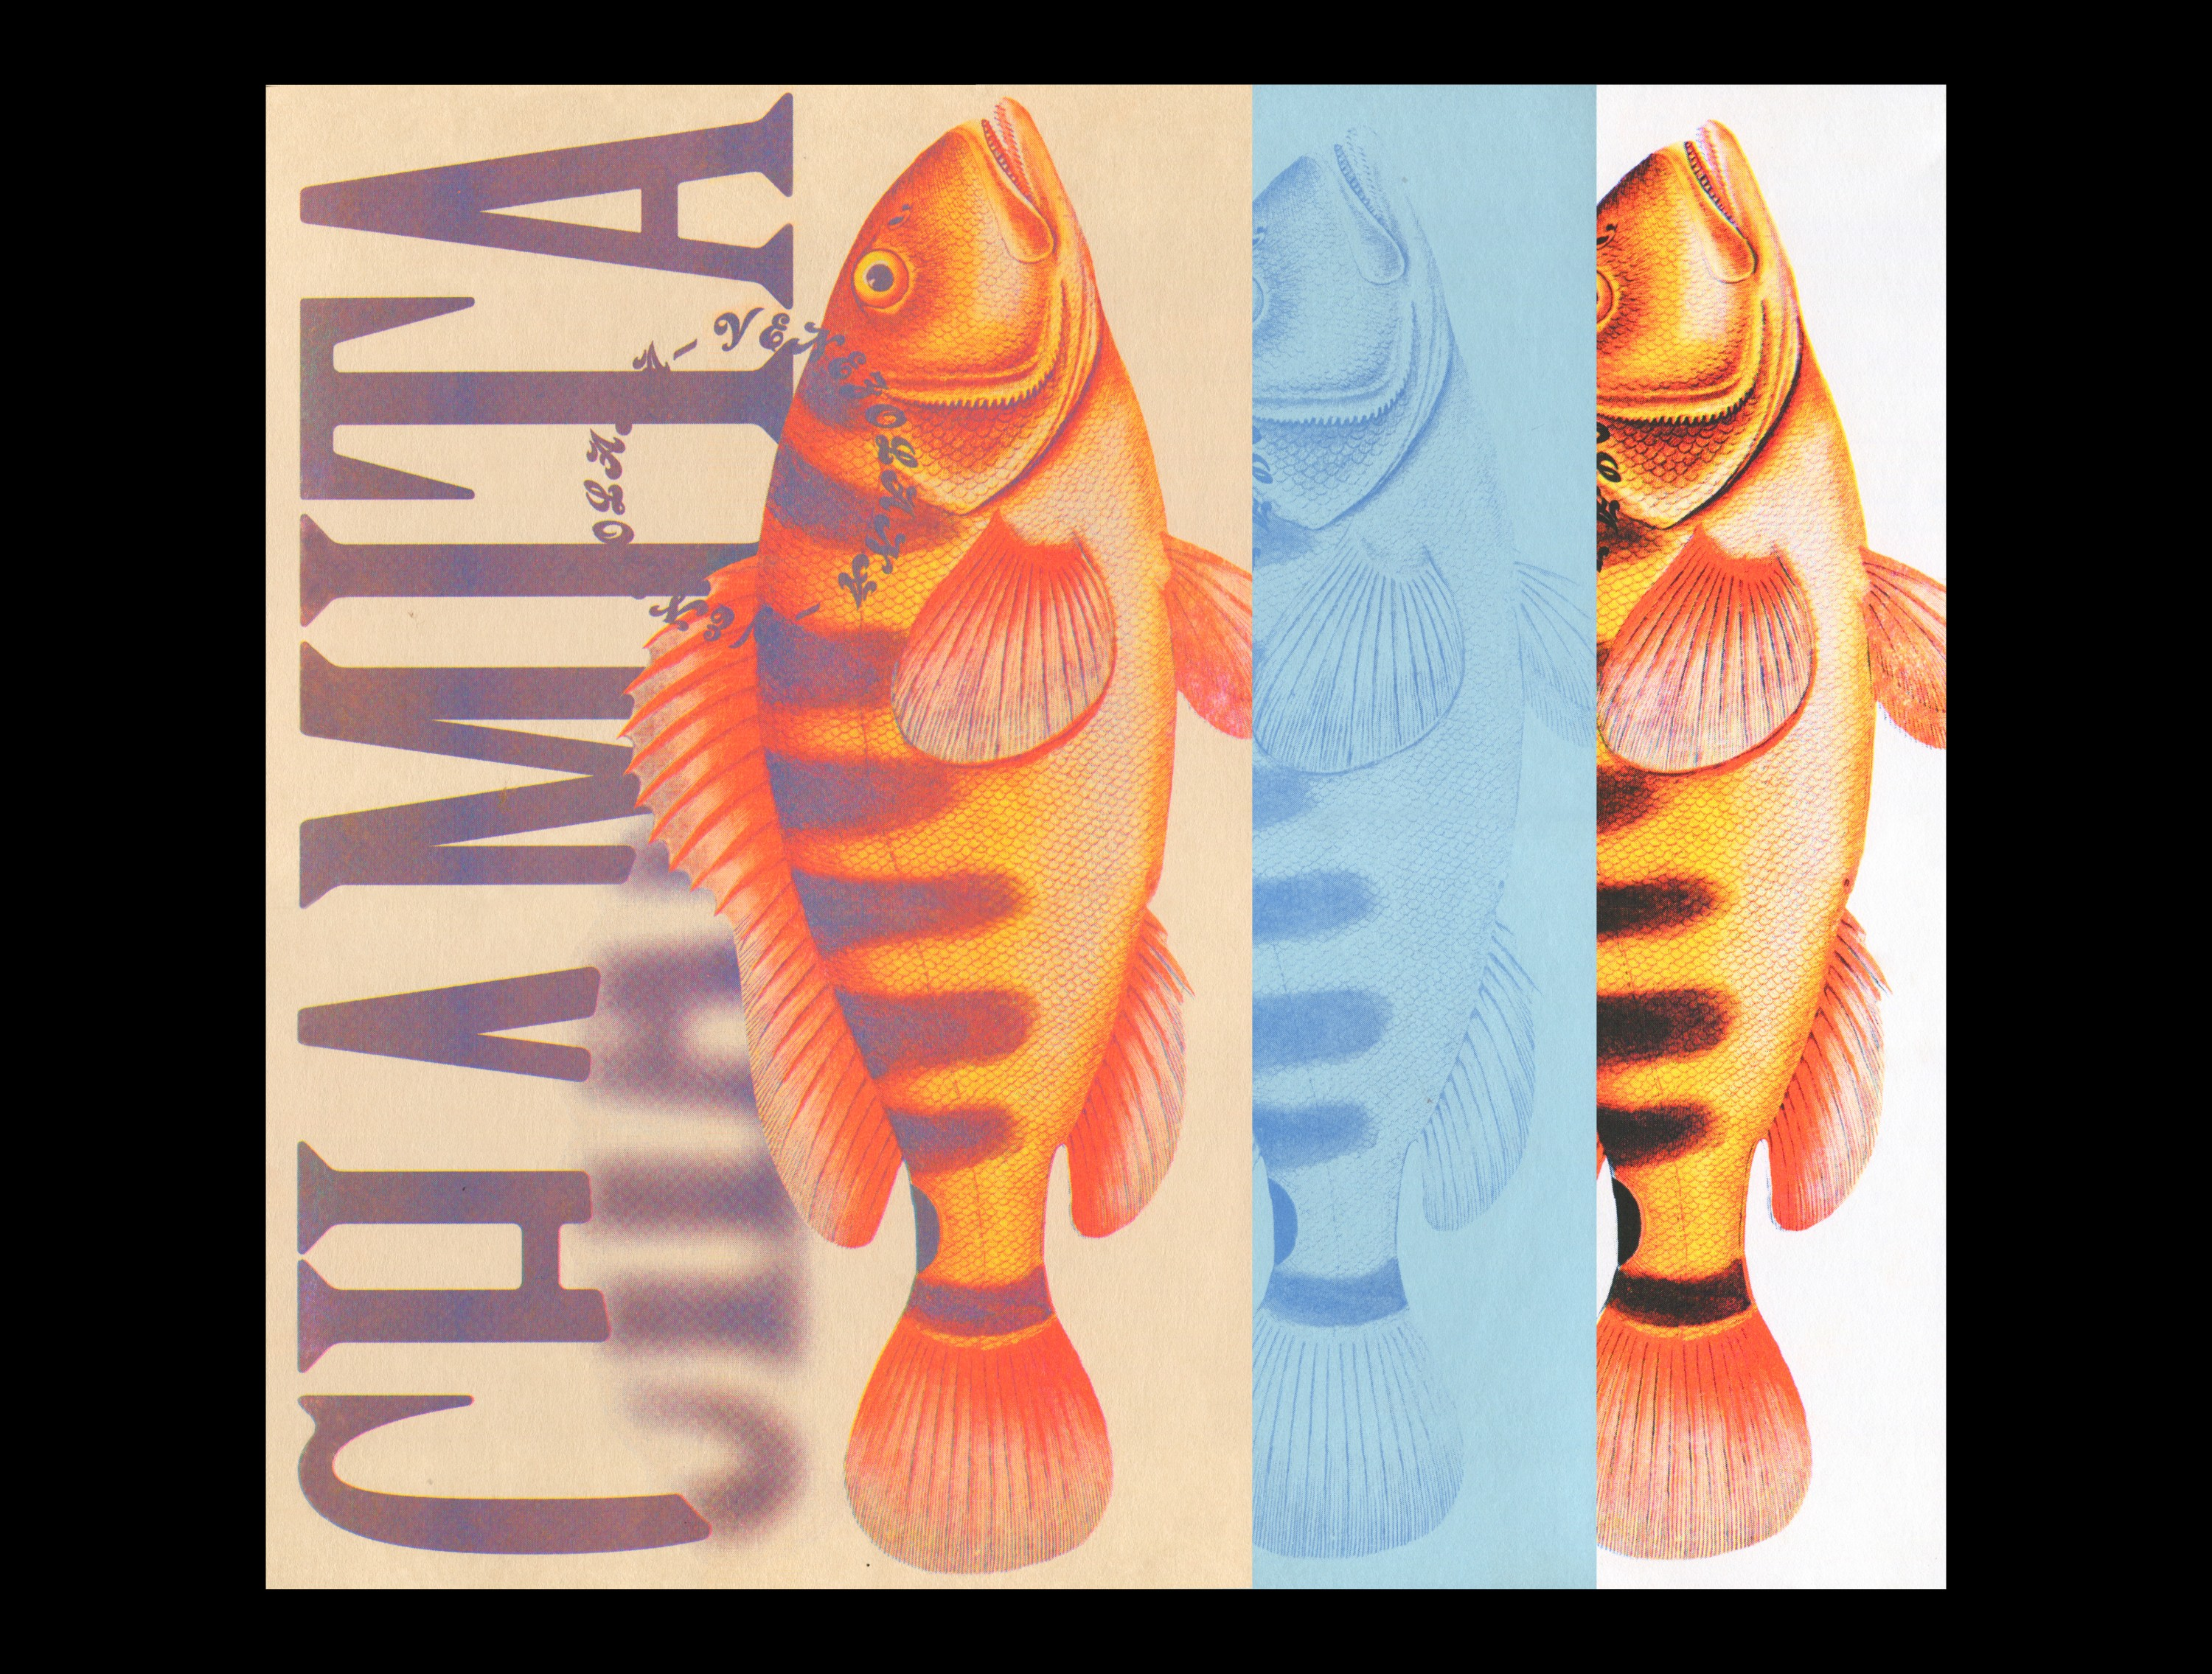 """3 posters of the word """"Chamita"""" on the left side, vertically laid out"""" and a highly detailed illustration of fish on the right, sitting over the words on the left. The bottom part of the C, H, and A letters in the word are blurred. The post"""